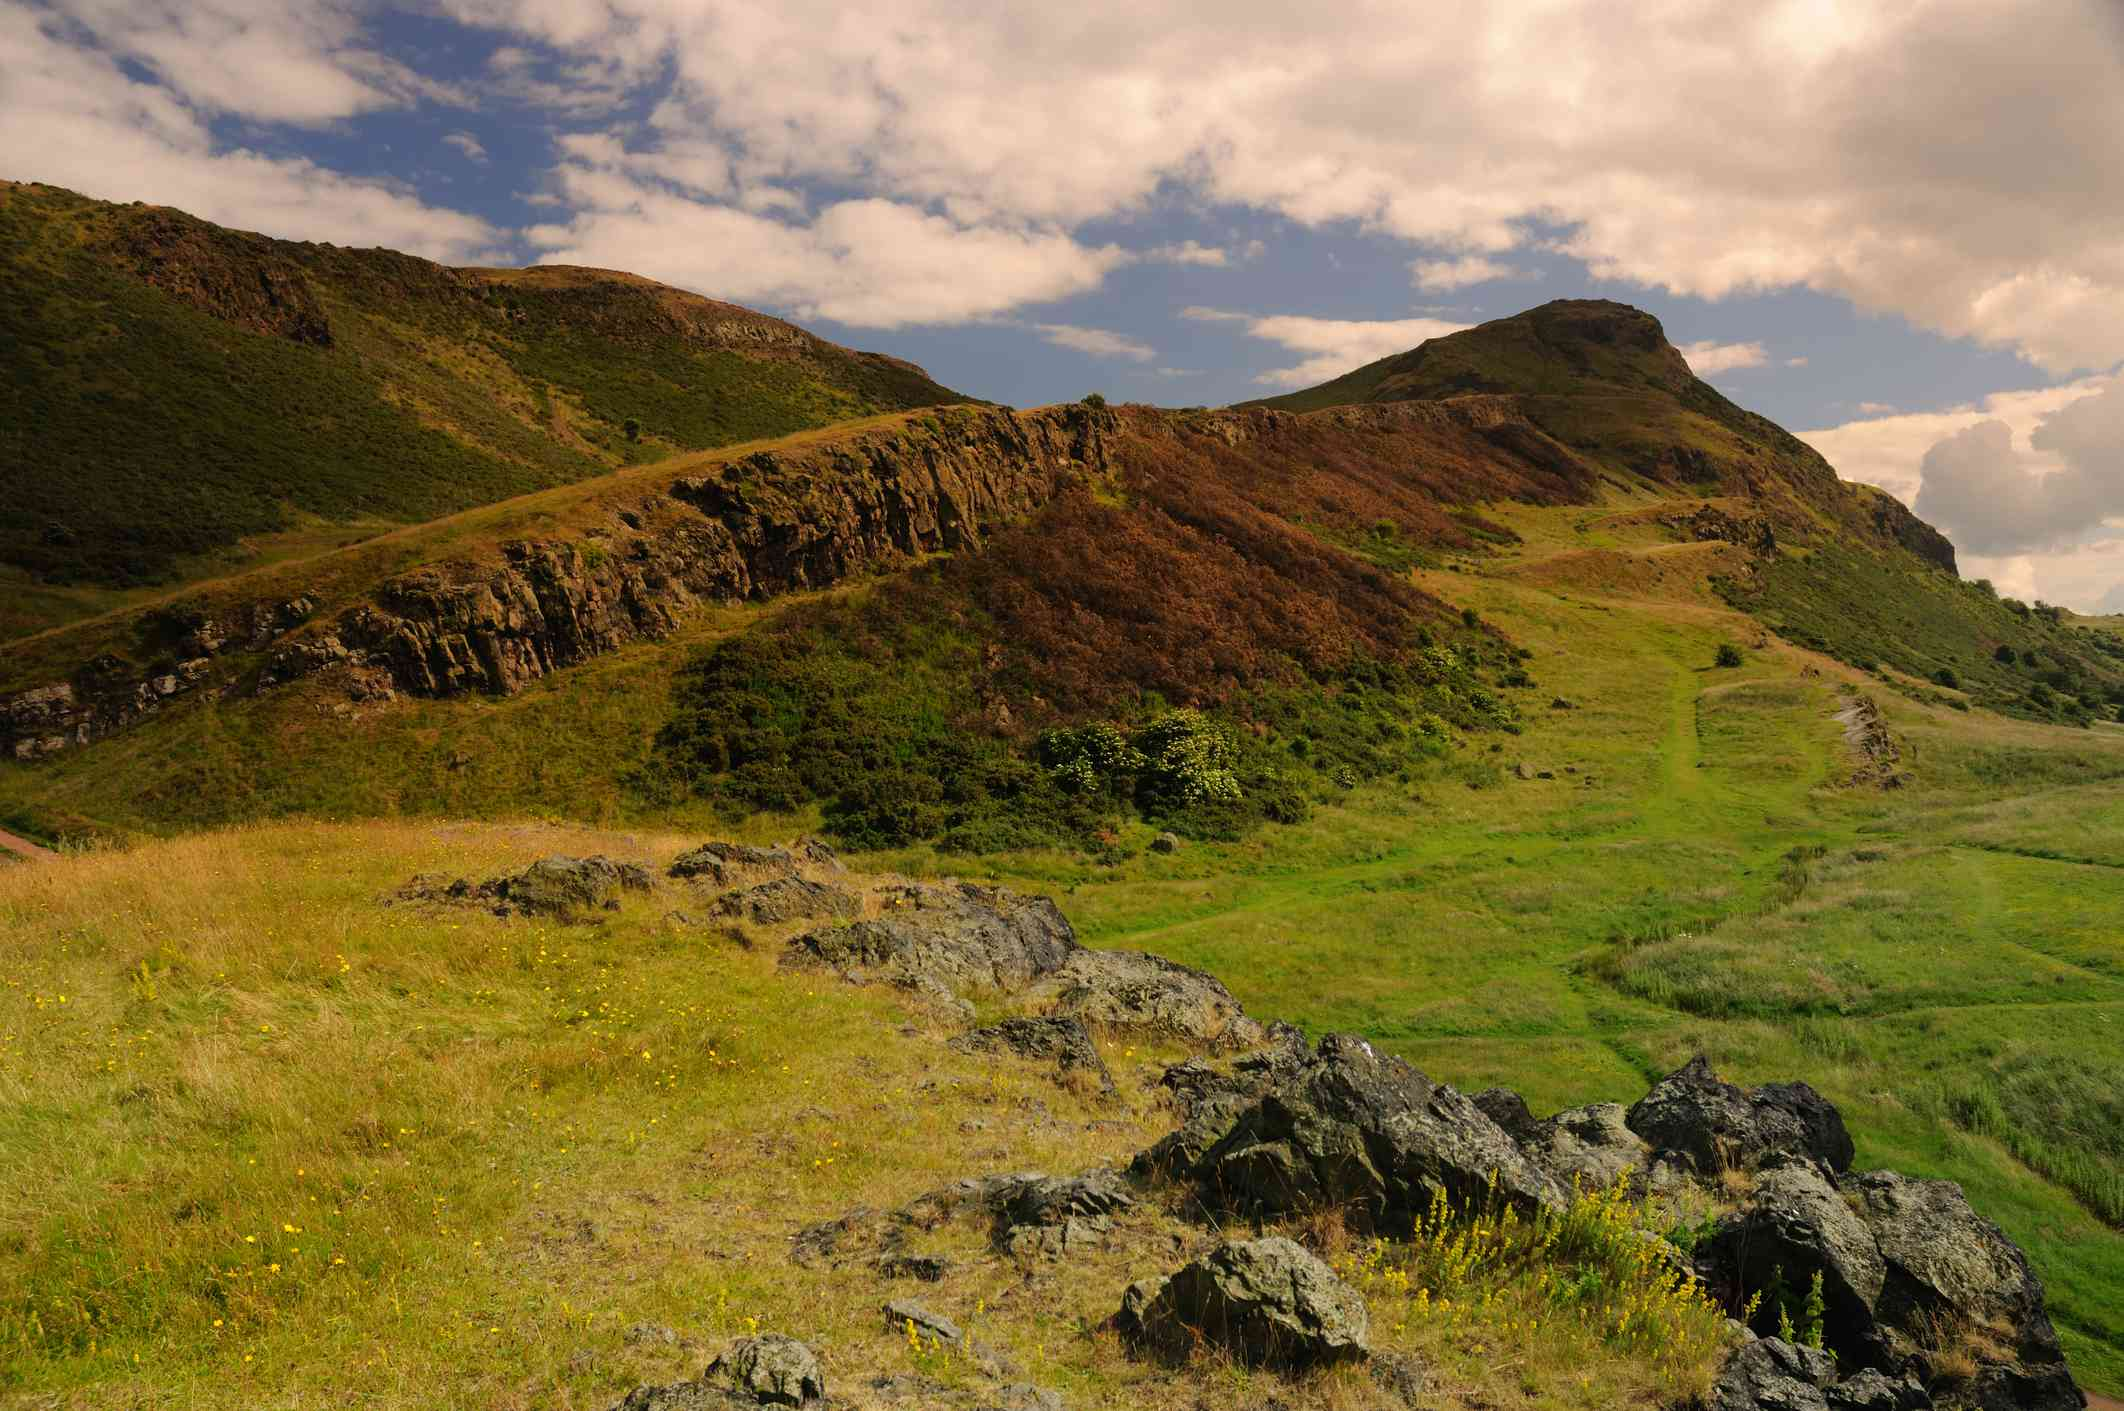 A wide angle view looking up at Arthur's Seat.